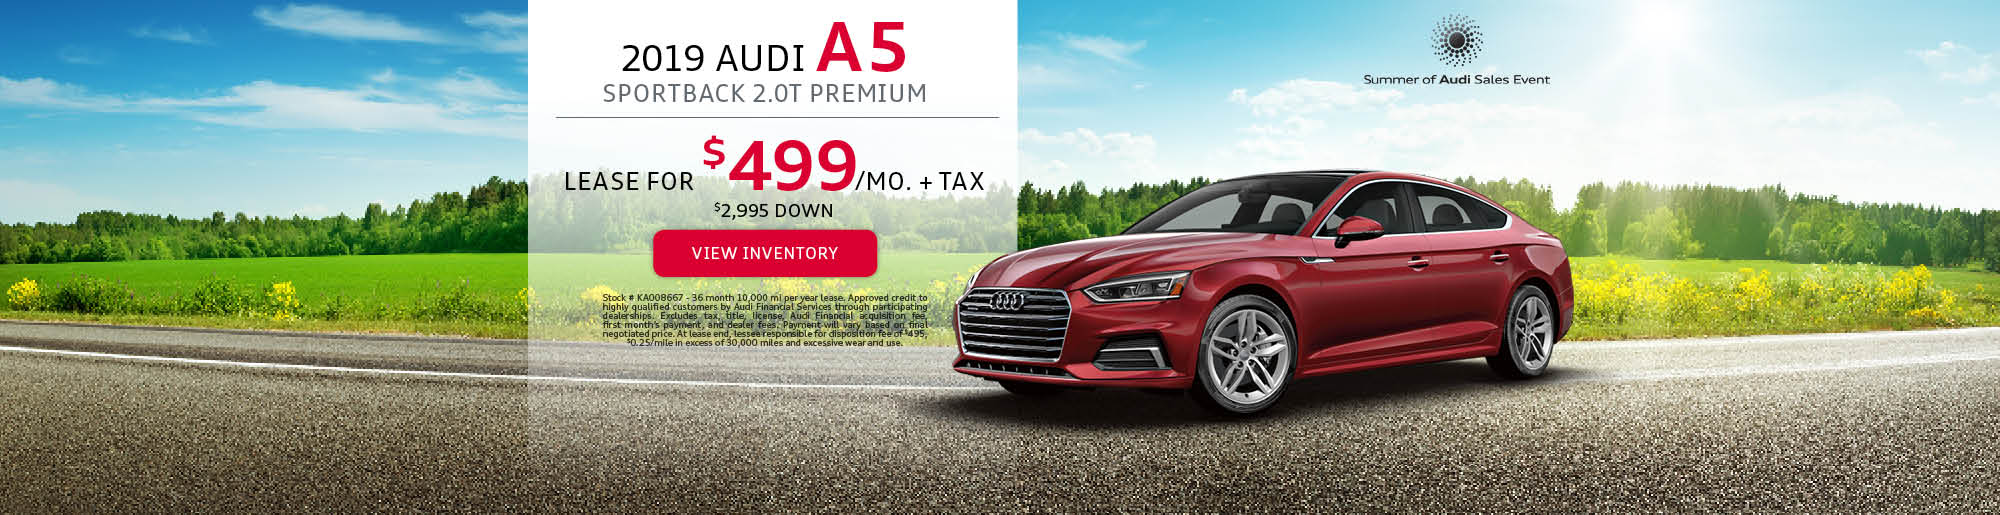 Audi Birmingham: Luxury Car Dealership in Irondale, AL